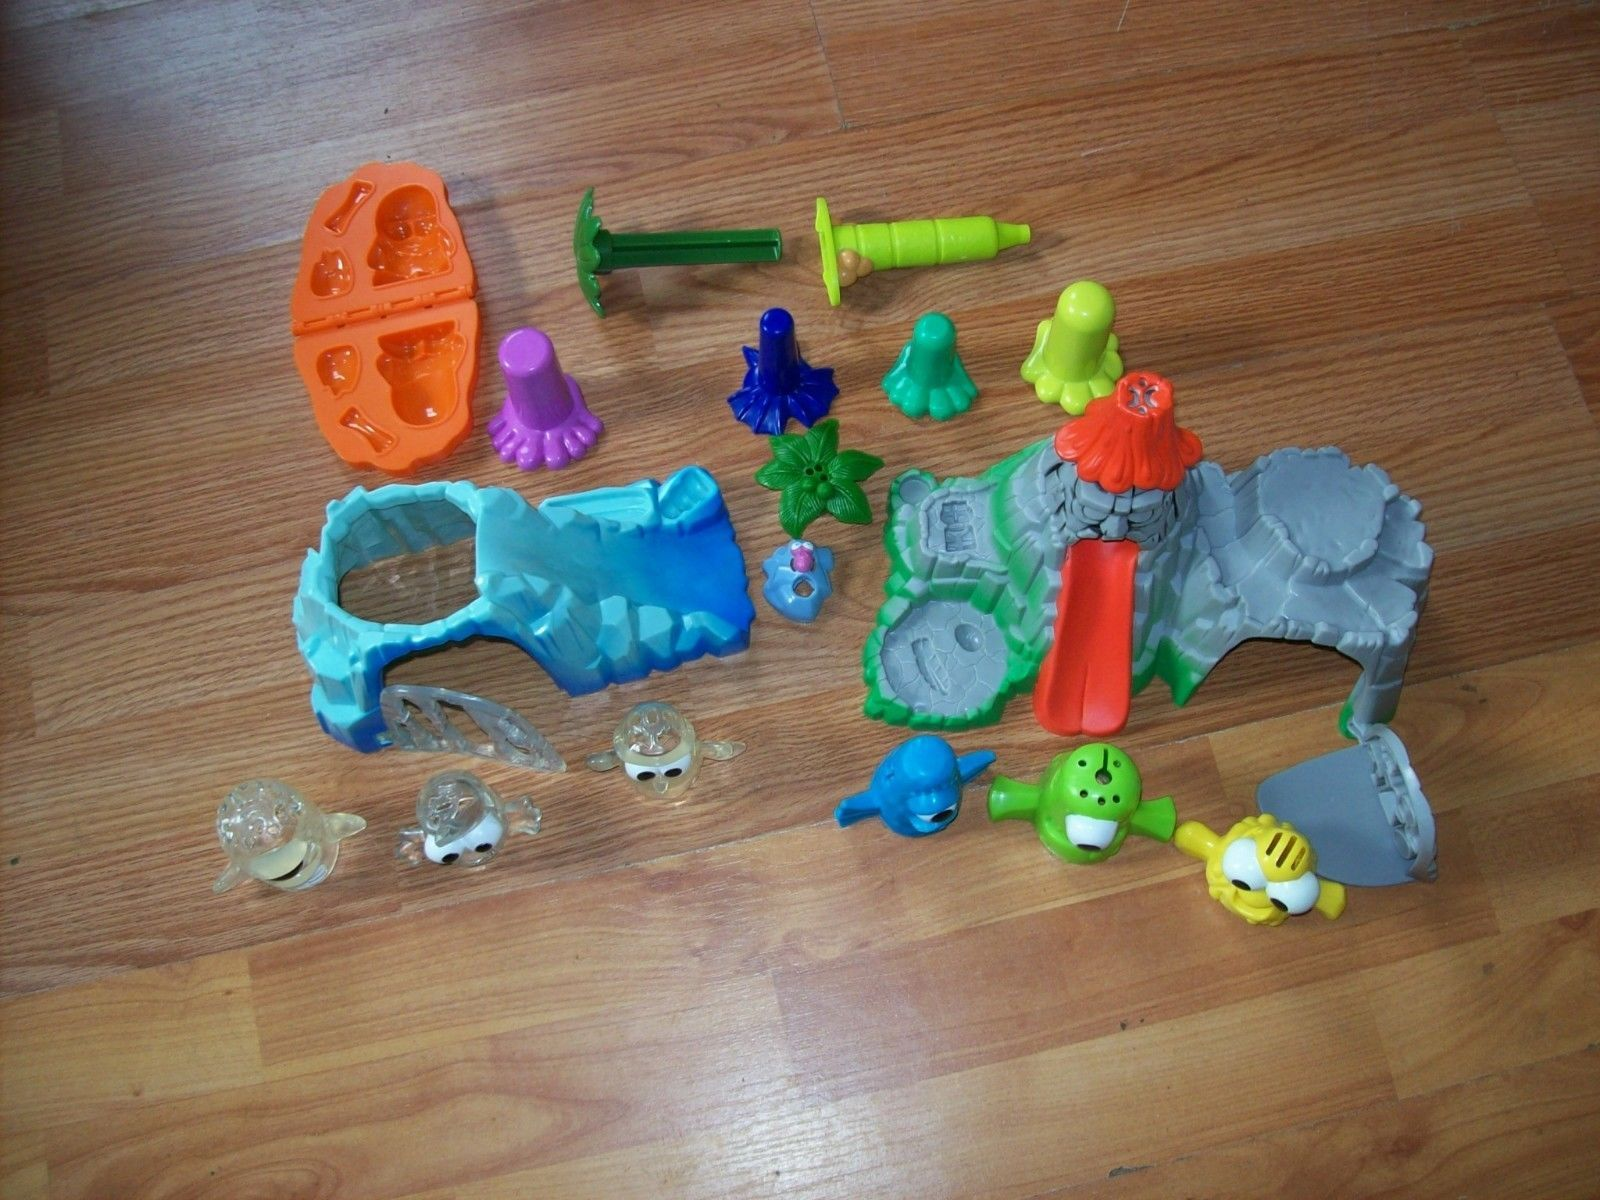 Play-Doh Doh Tiki Island Volcano AND Doh Island Crystal Cave Play Sets